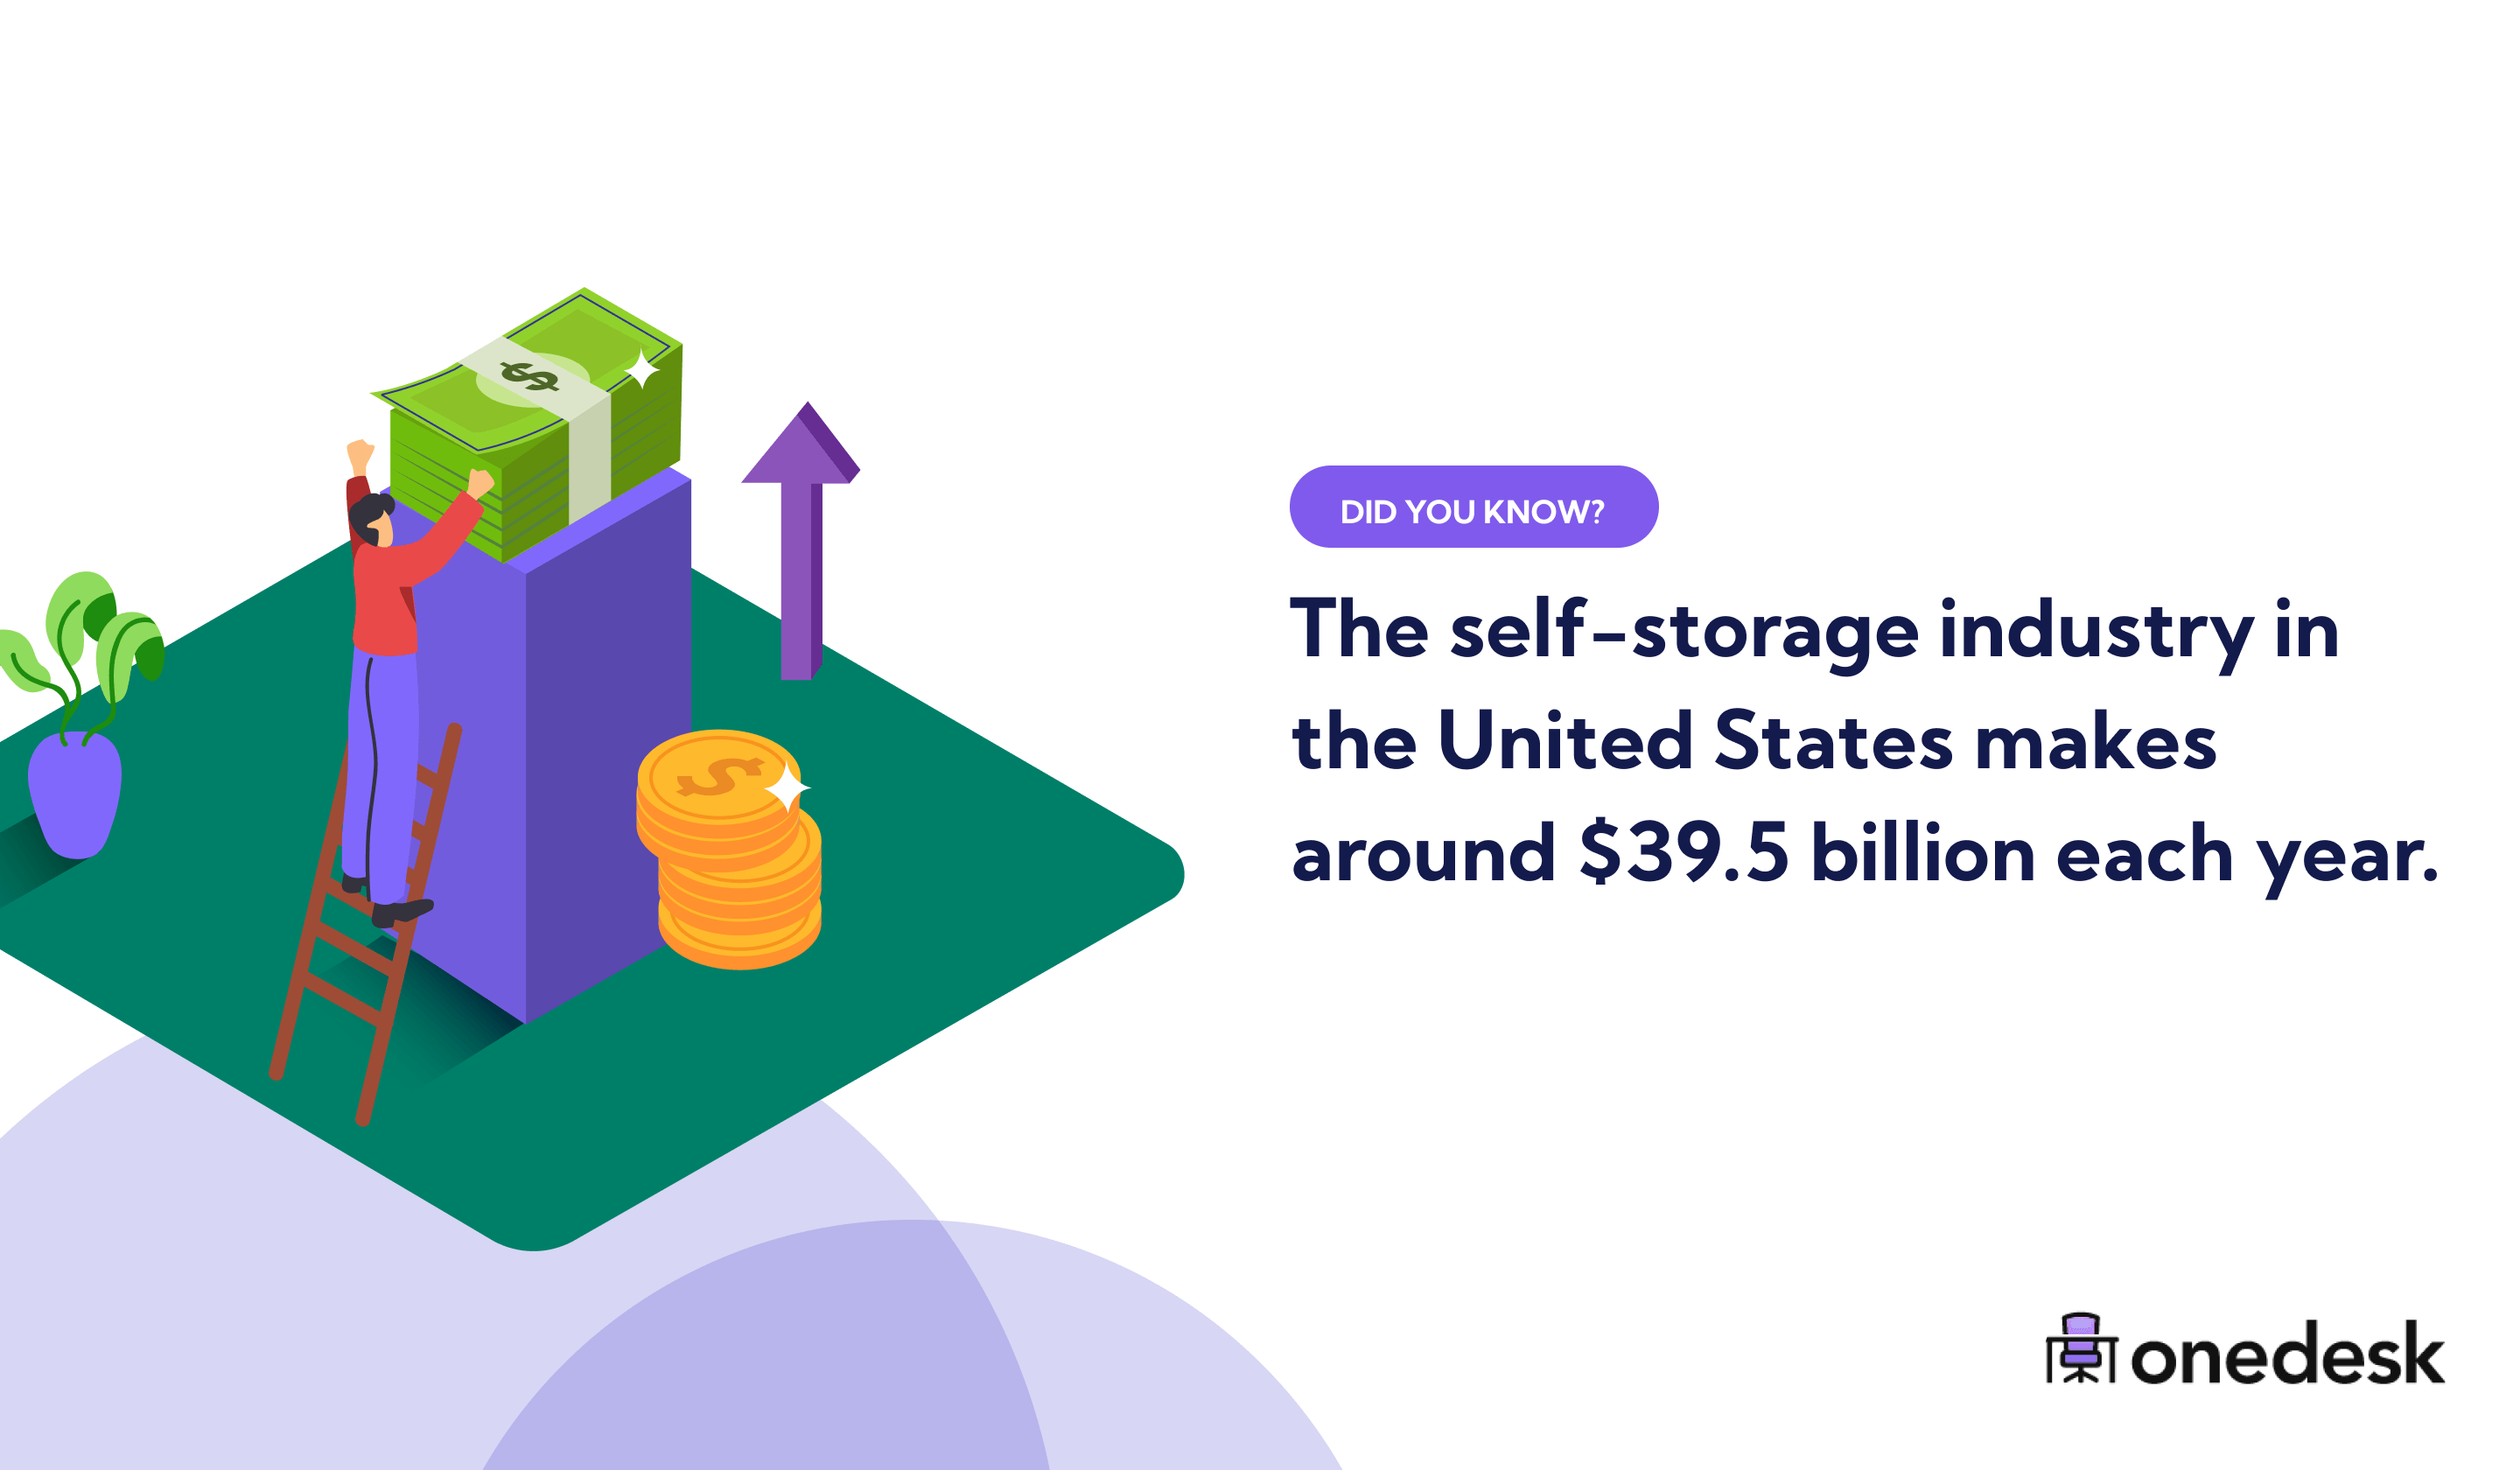 self storage industry in the US yearly revenue